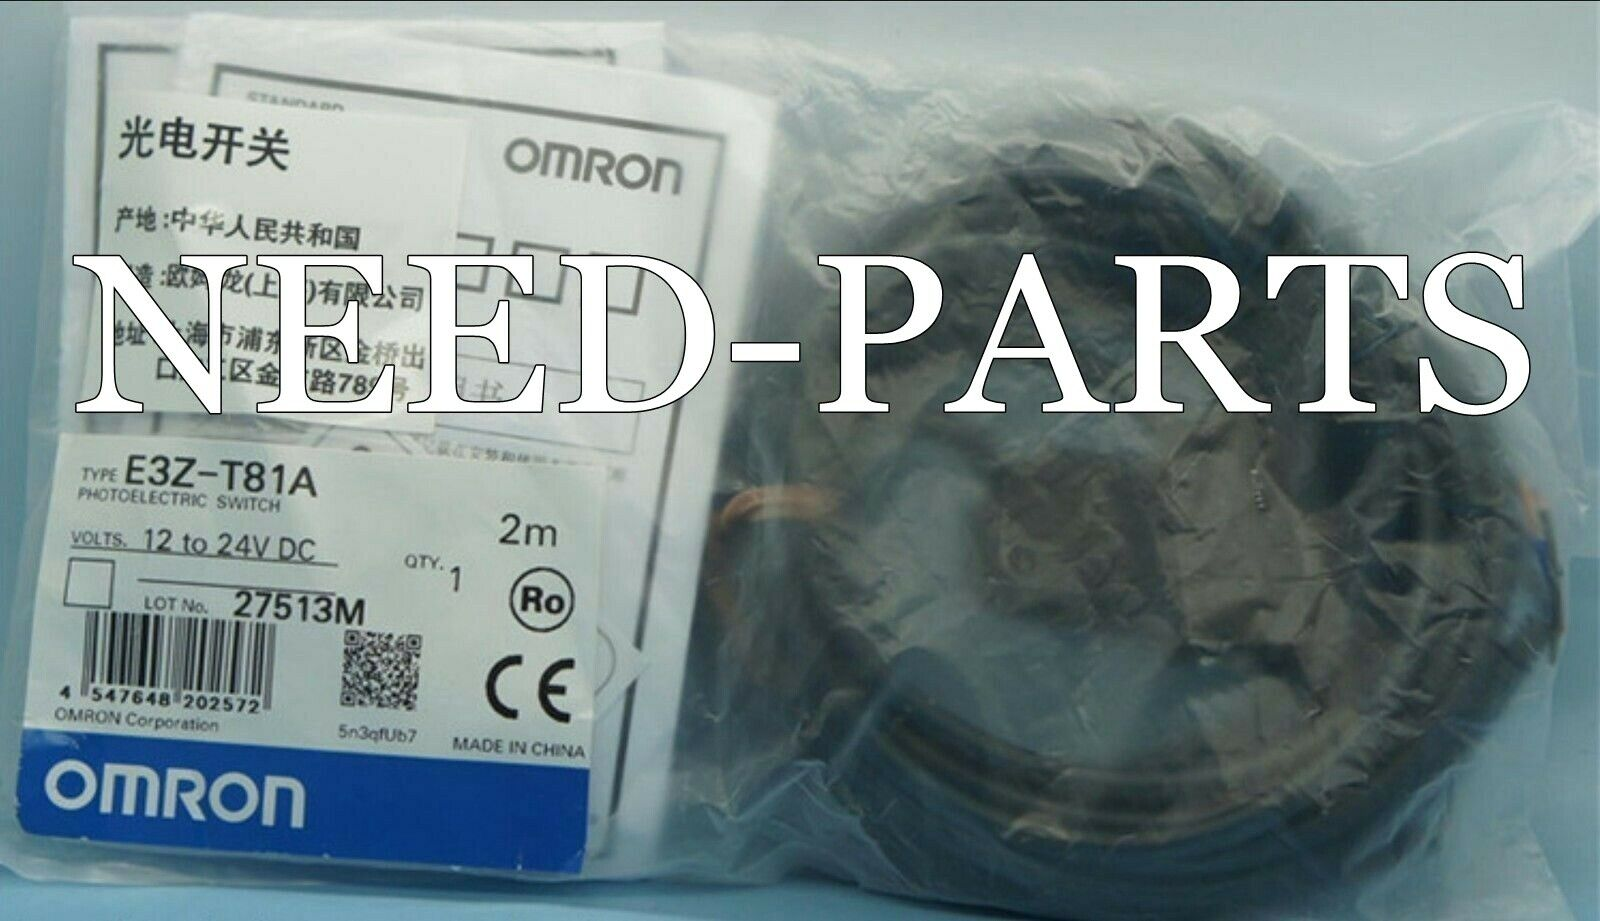 NEW 1PCS OMRON E3Z-T81A 10-24VDC 2m PhotoElectric Switch